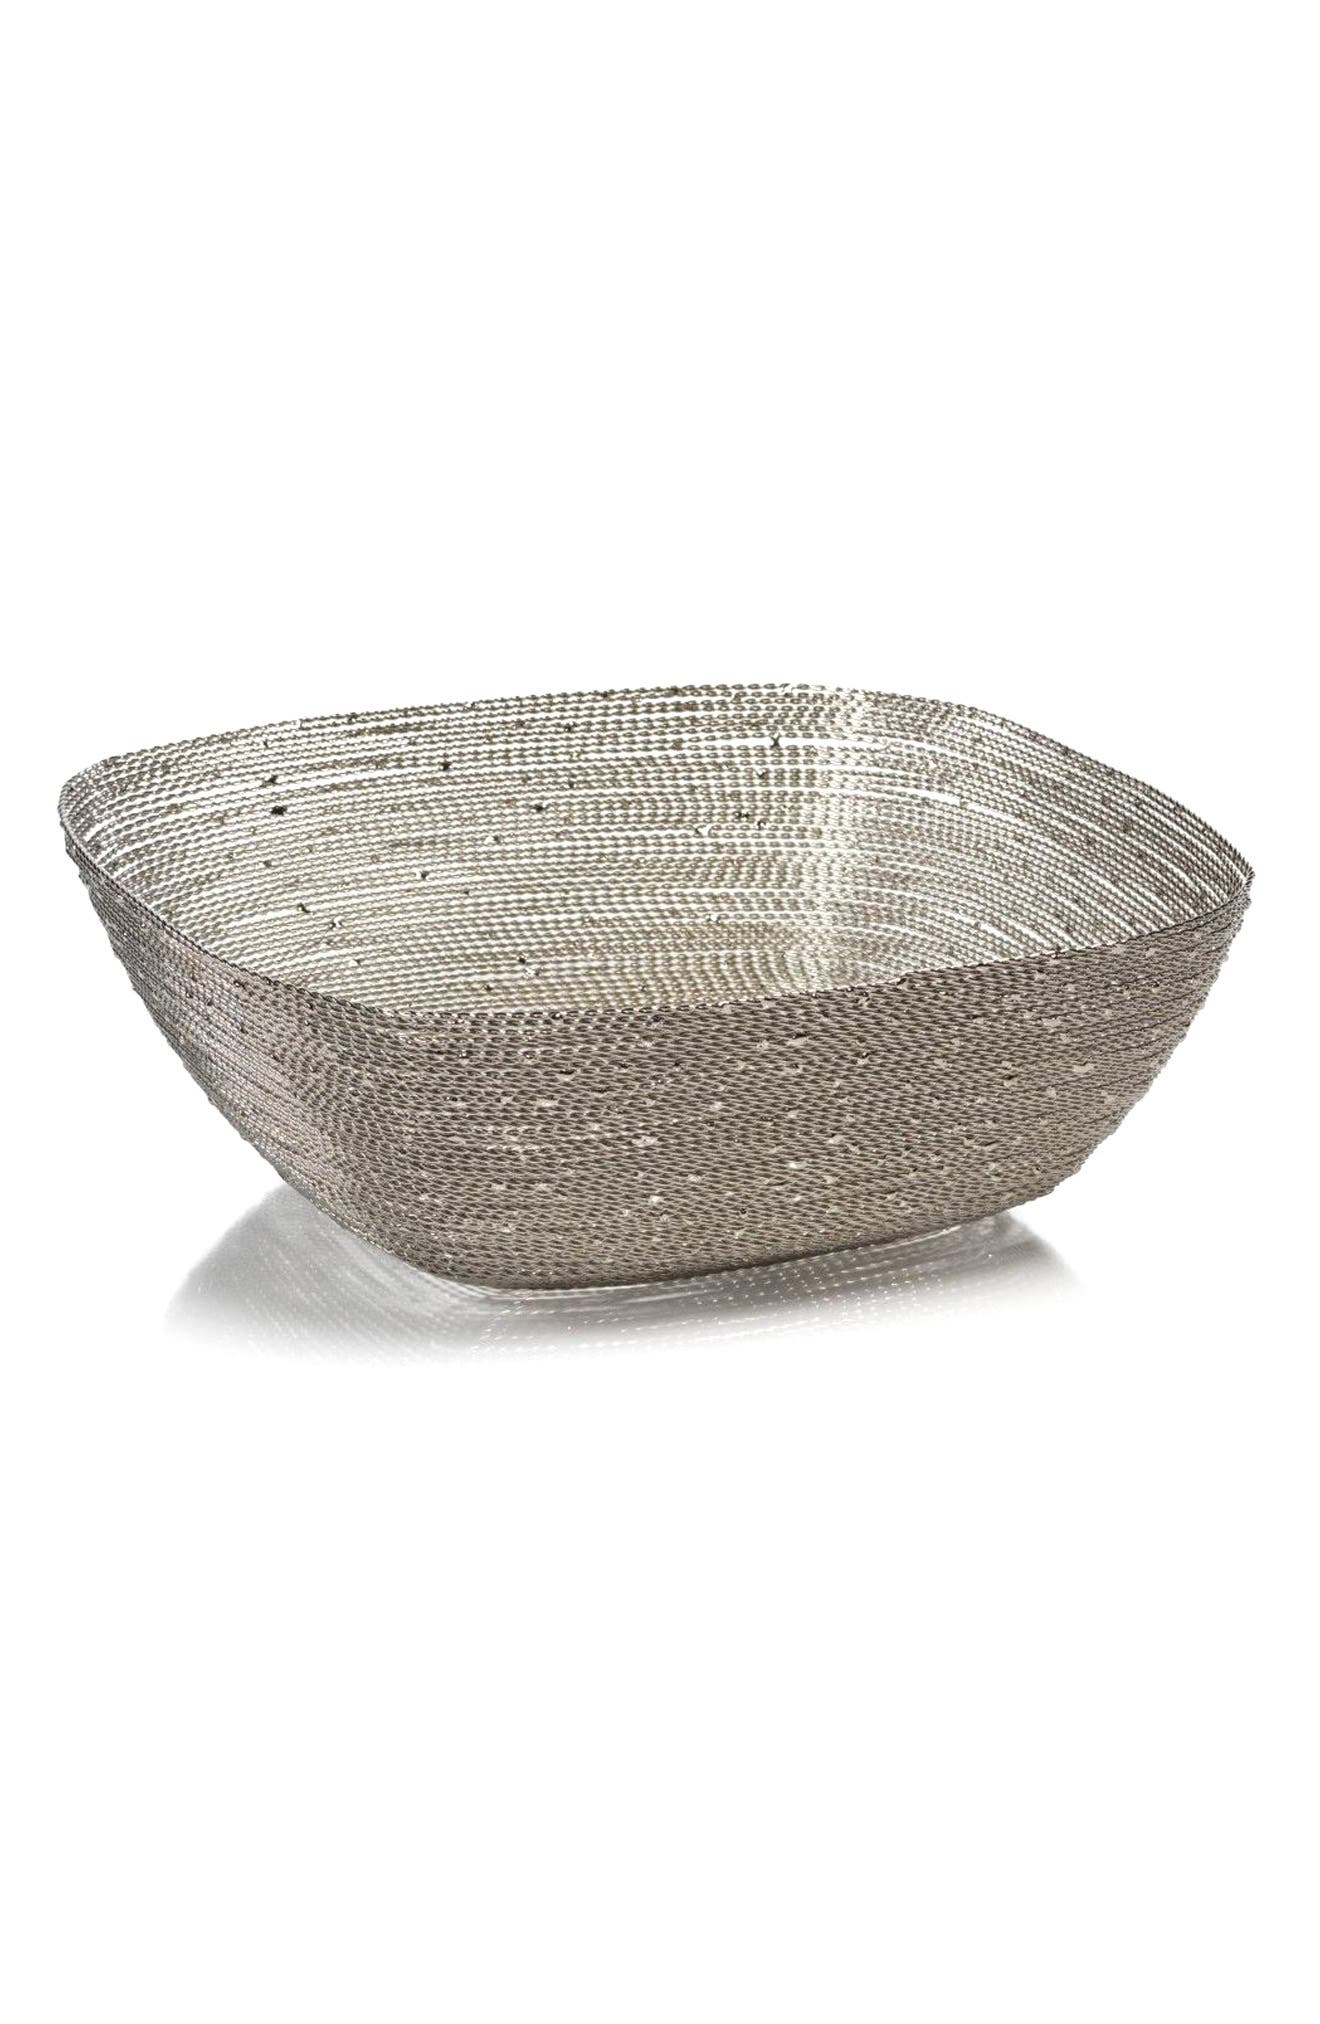 Alternate Image 1 Selected - Zodax Zulu Large Square Woven Wire Basket